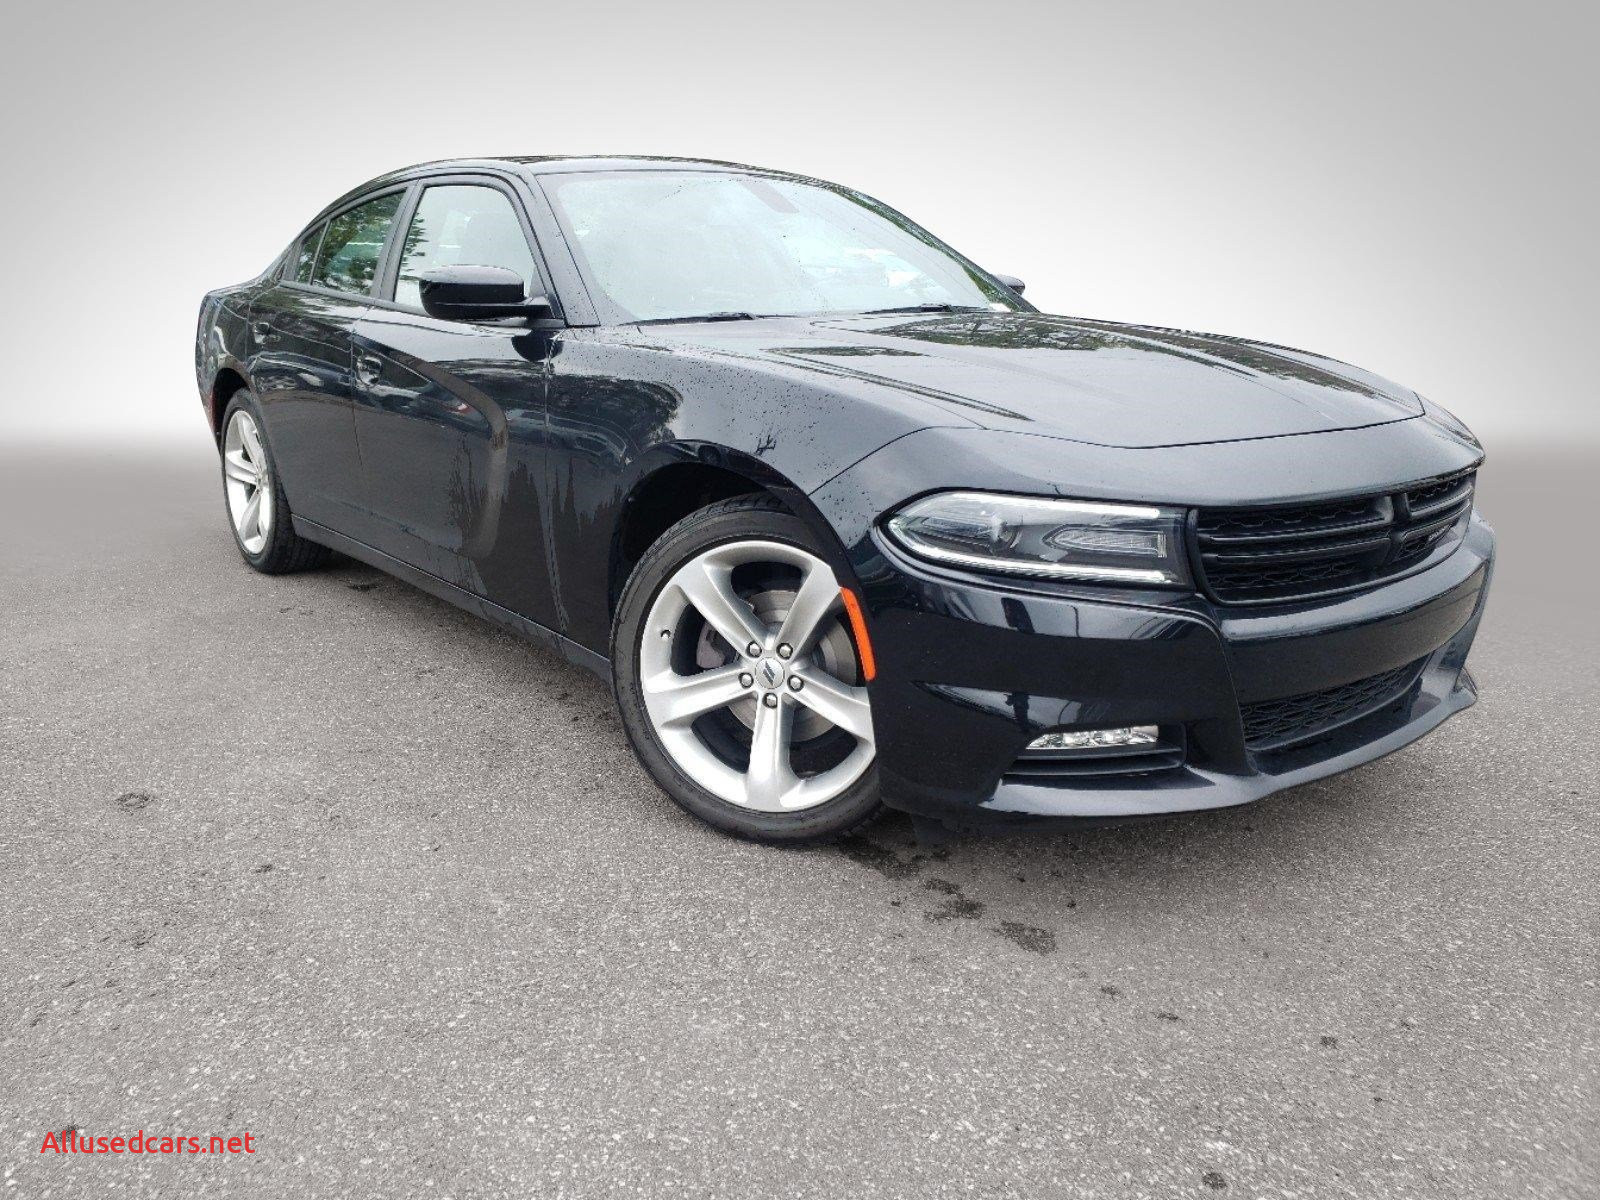 2018 Dodge Charger Sxt Awesome Pre Owned 2018 Dodge Charger Sxt Plus